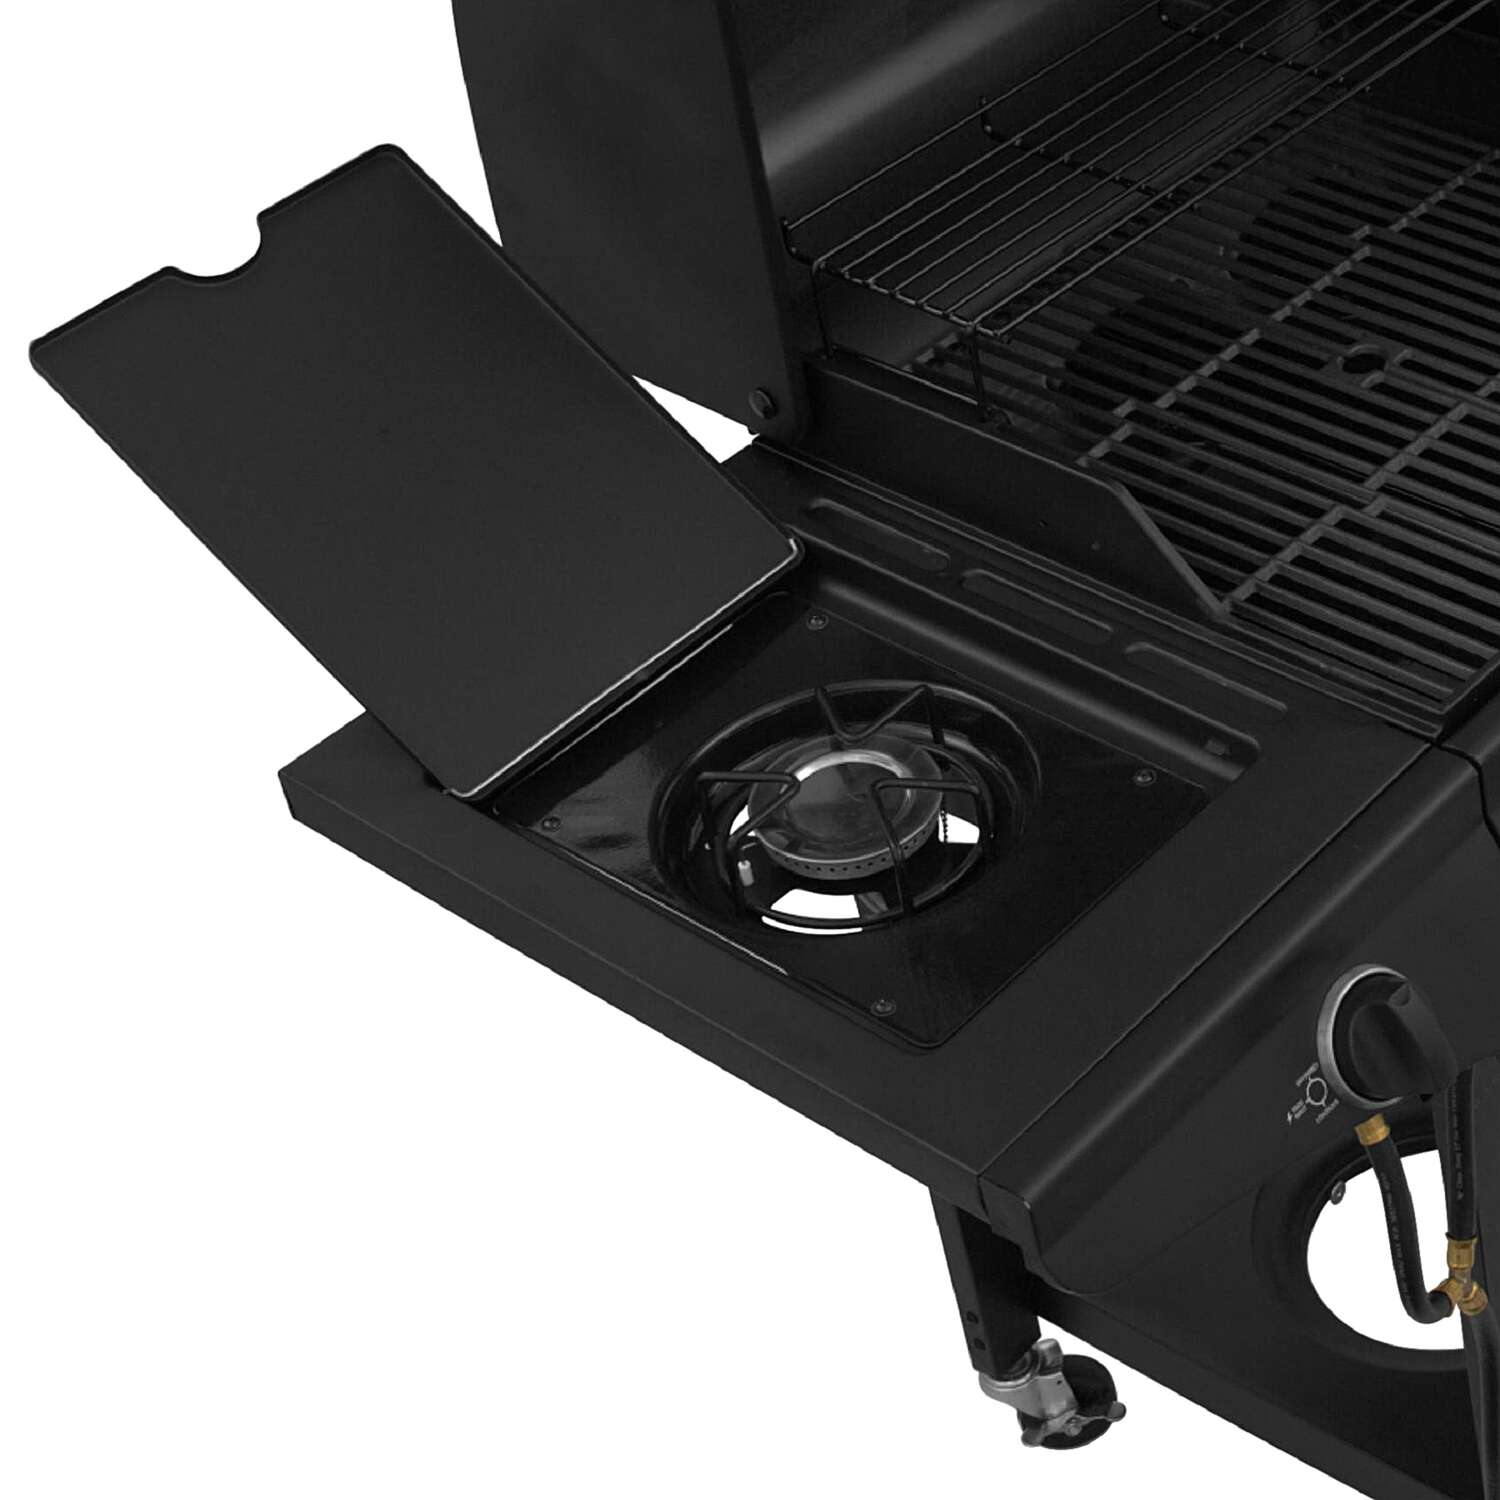 Char-Broil  Combo 3 Burner  3 burners Multi-Fuel  Black  Grill  36000 BTU